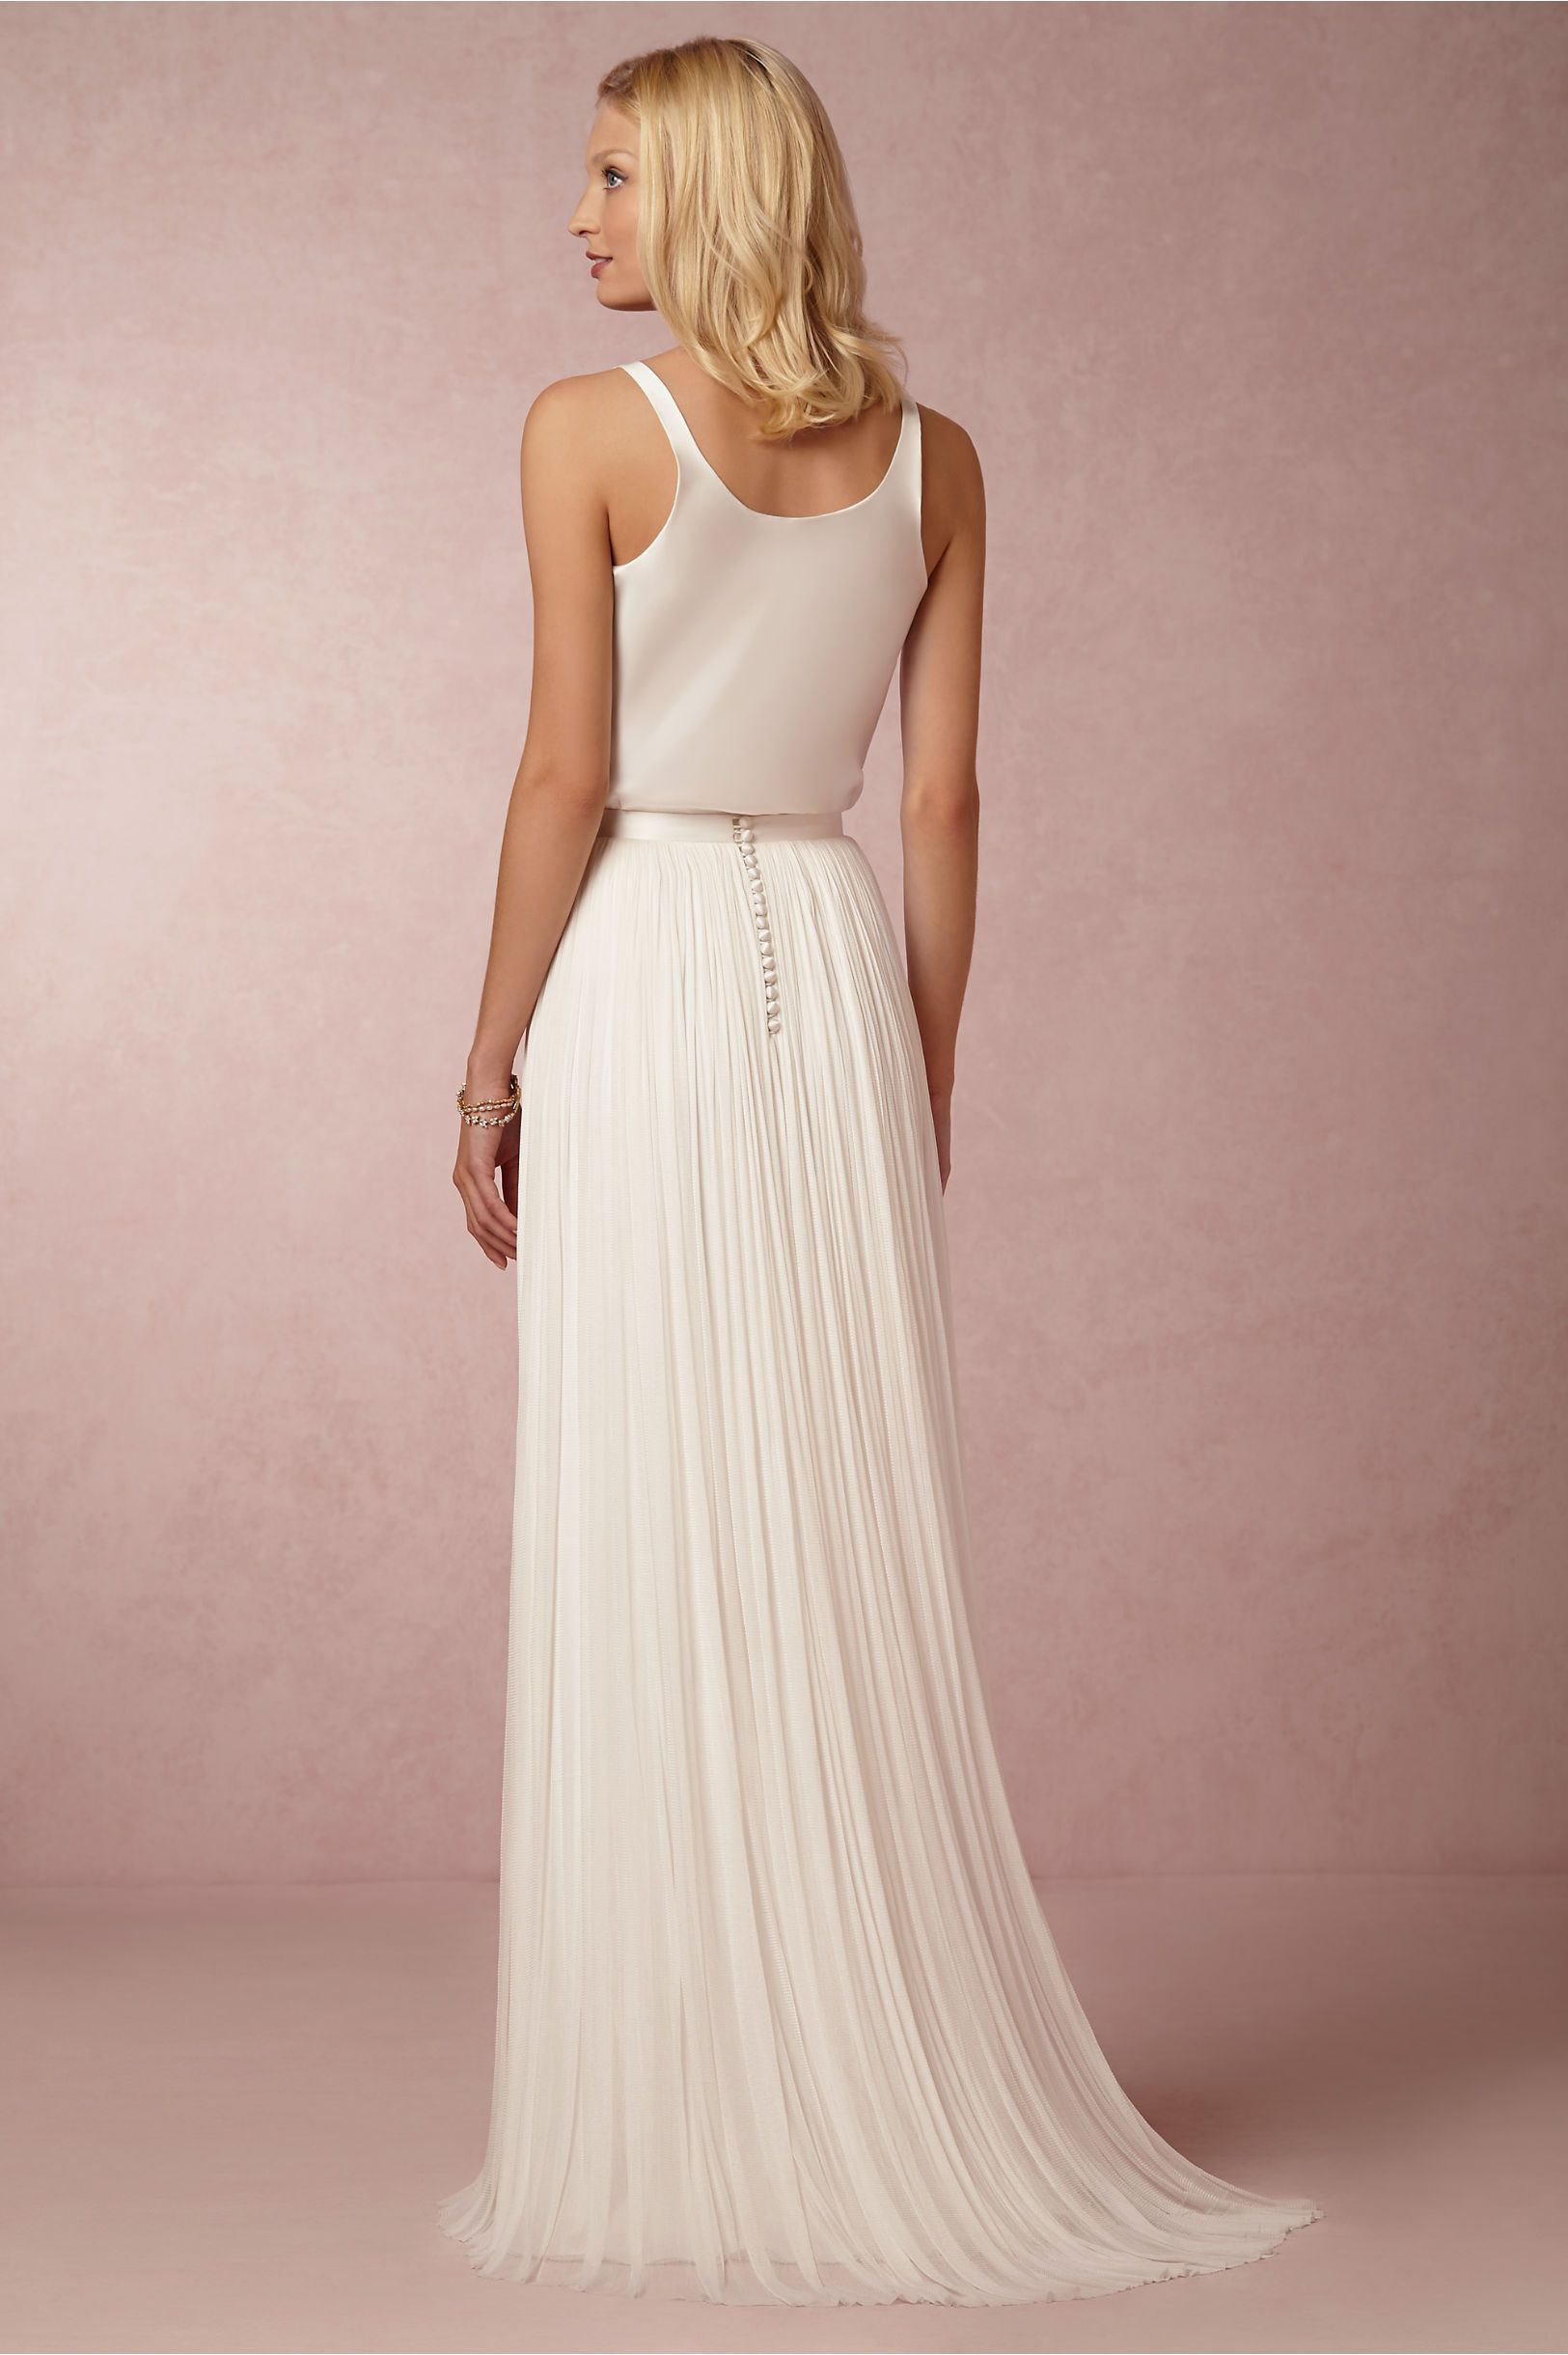 Bhldn in perpetuity camisole anika tulle skirt in bride bridal in perpetuity camisole anika tulle skirt in bride wedding dresses at bhldn ombrellifo Choice Image